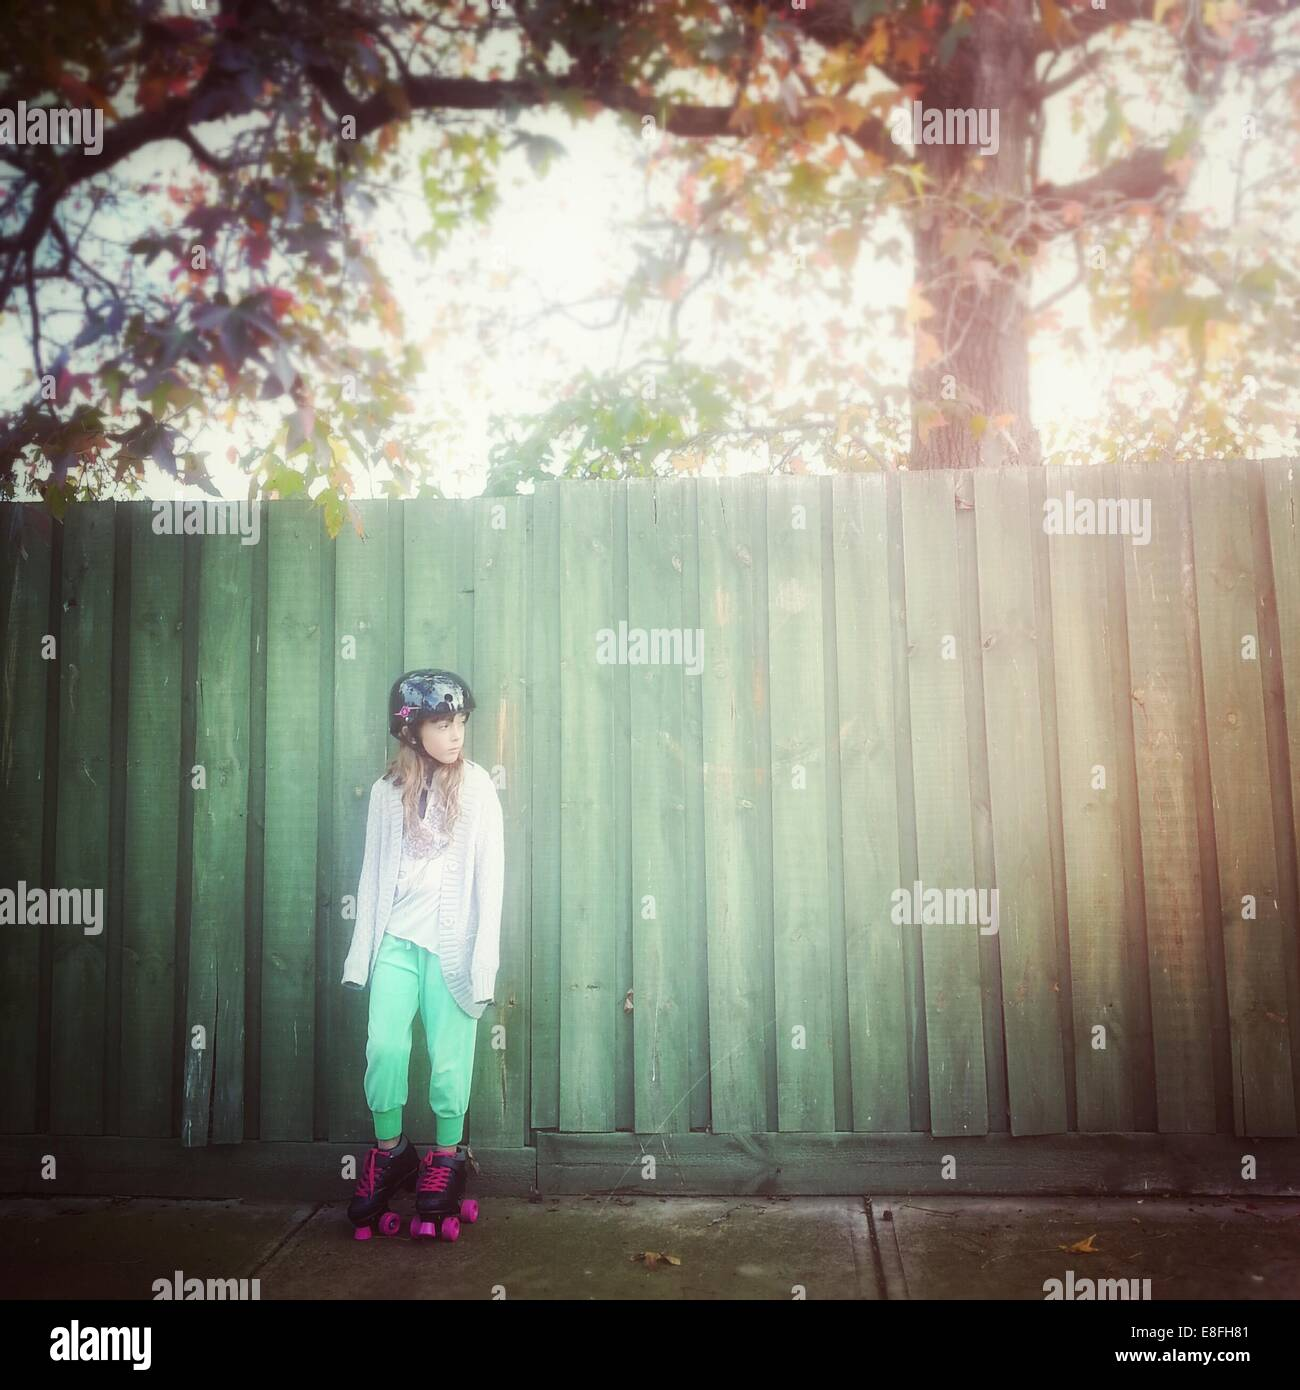 Girl wearing rollerskates leaning against fence Photo Stock